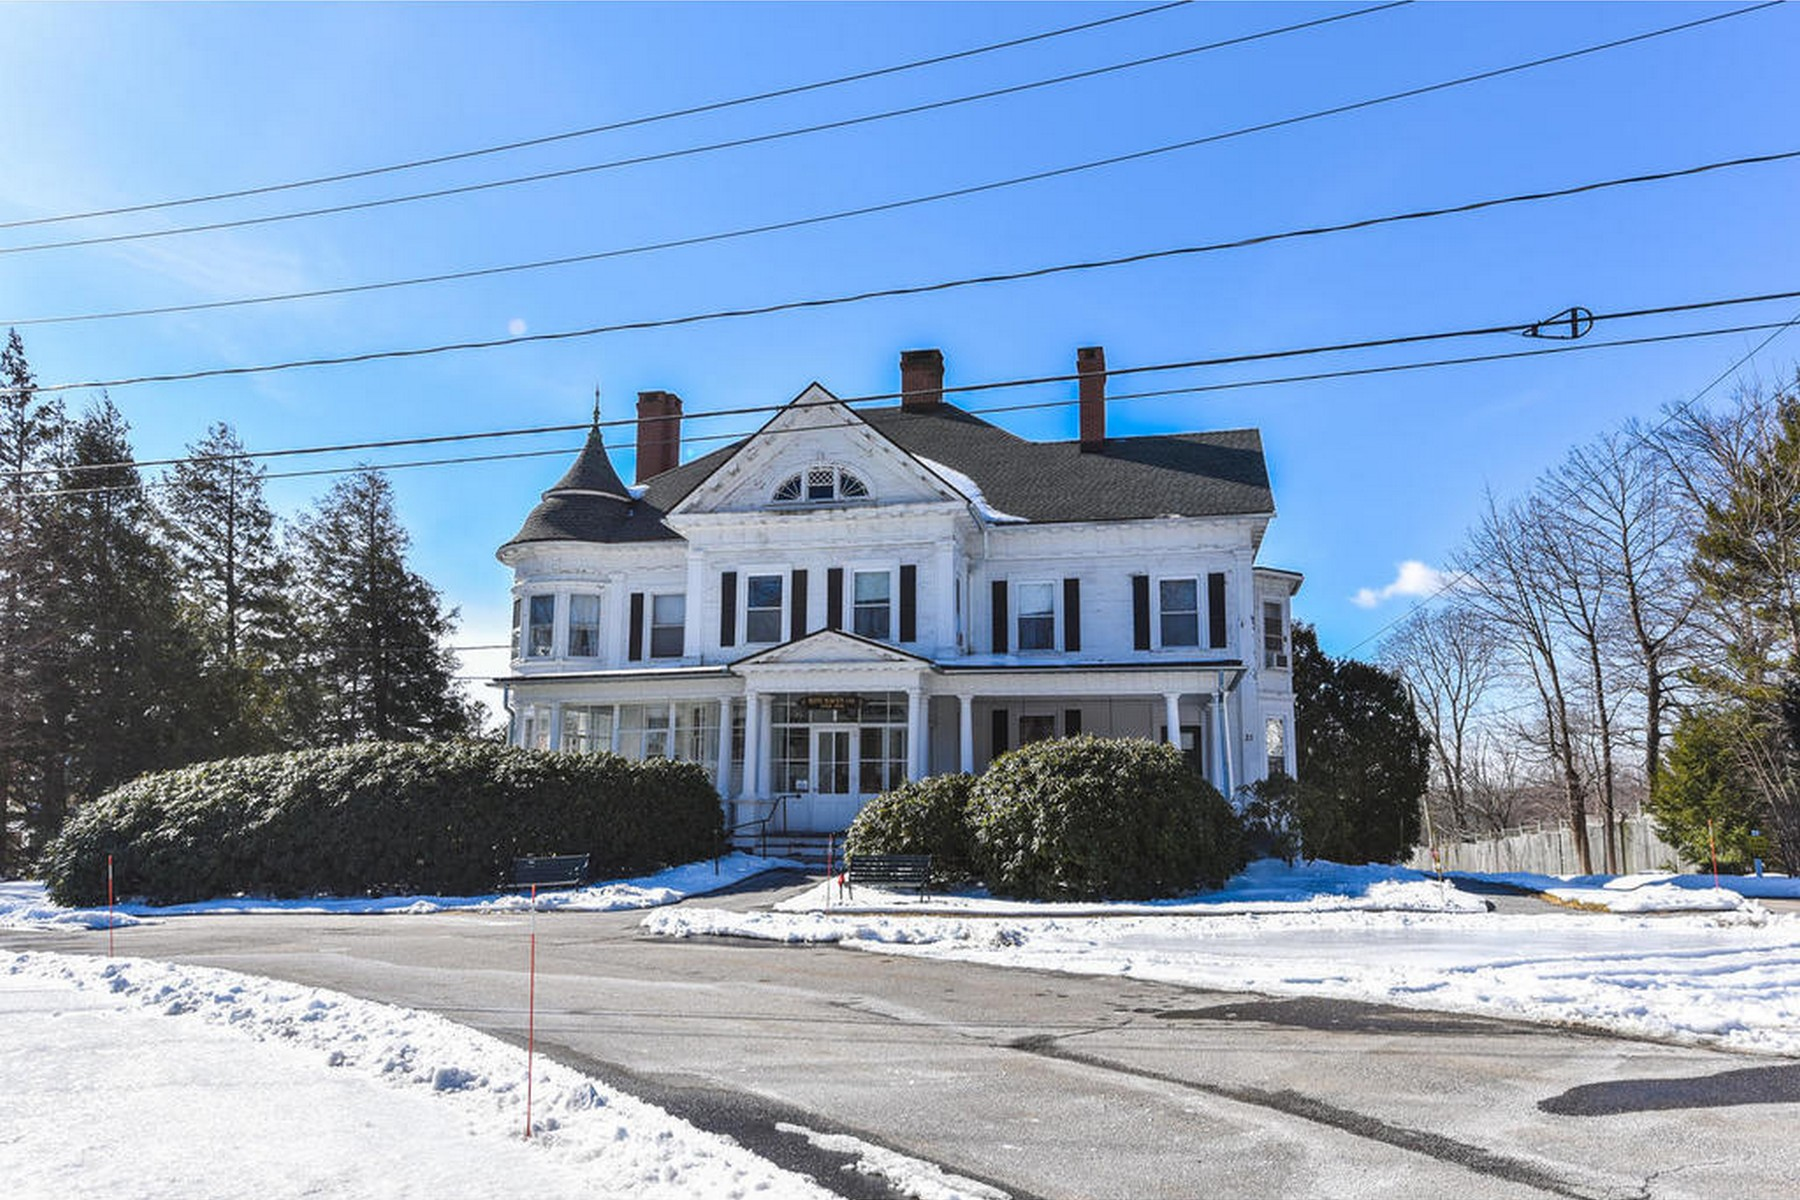 Casa Unifamiliar por un Venta en The Charles Belden House Ca. 1888 31 North Street Litchfield, Connecticut 06759 Estados Unidos